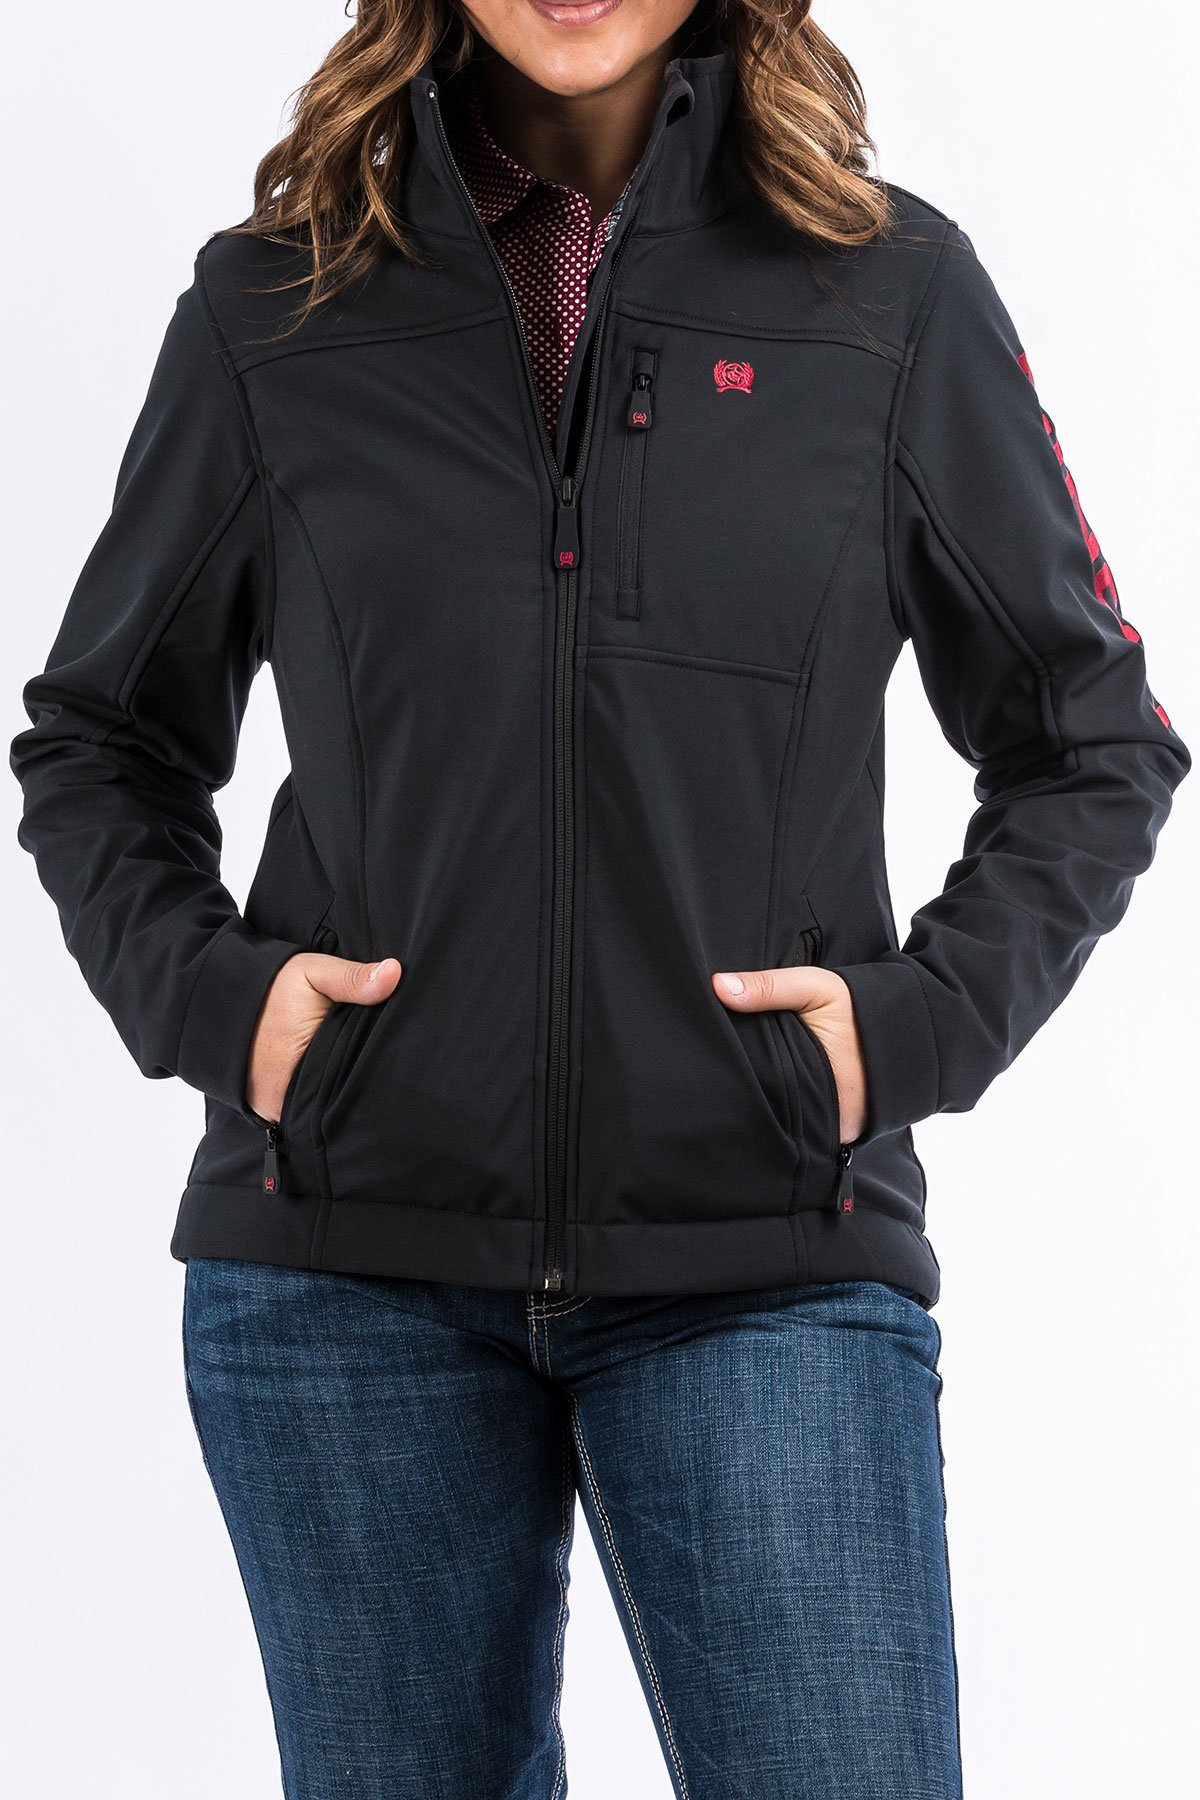 3f78a8e6bc4 Cinch Women s Black Cranberry Bonded Concealed Carry Jacket in 2019 ...